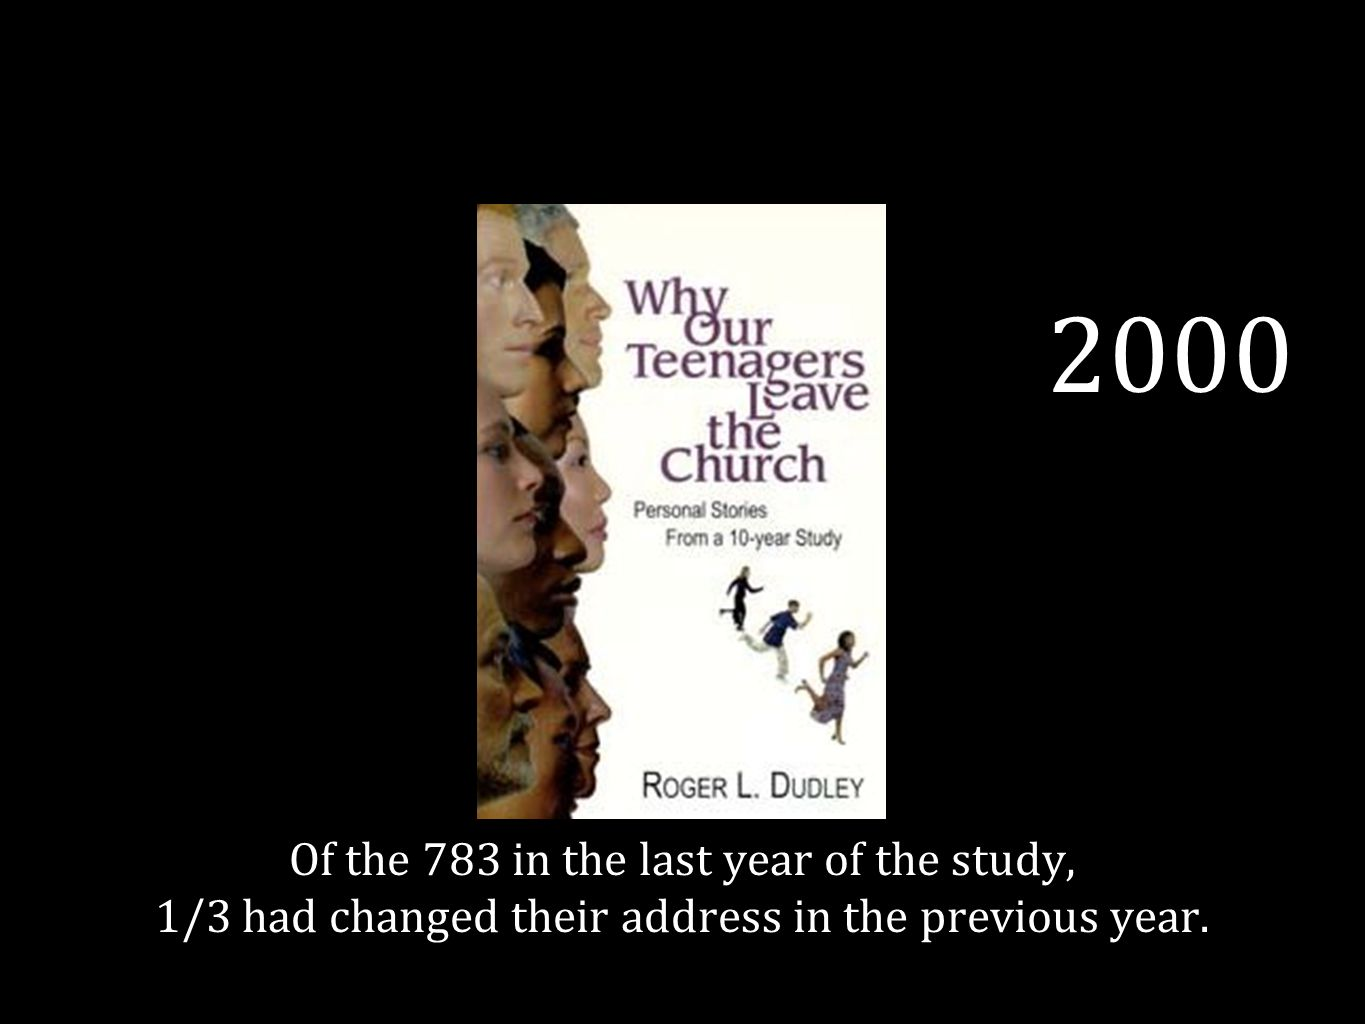 2000 Of the 783 in the last year of the study, 1/3 had changed their address in the previous year.